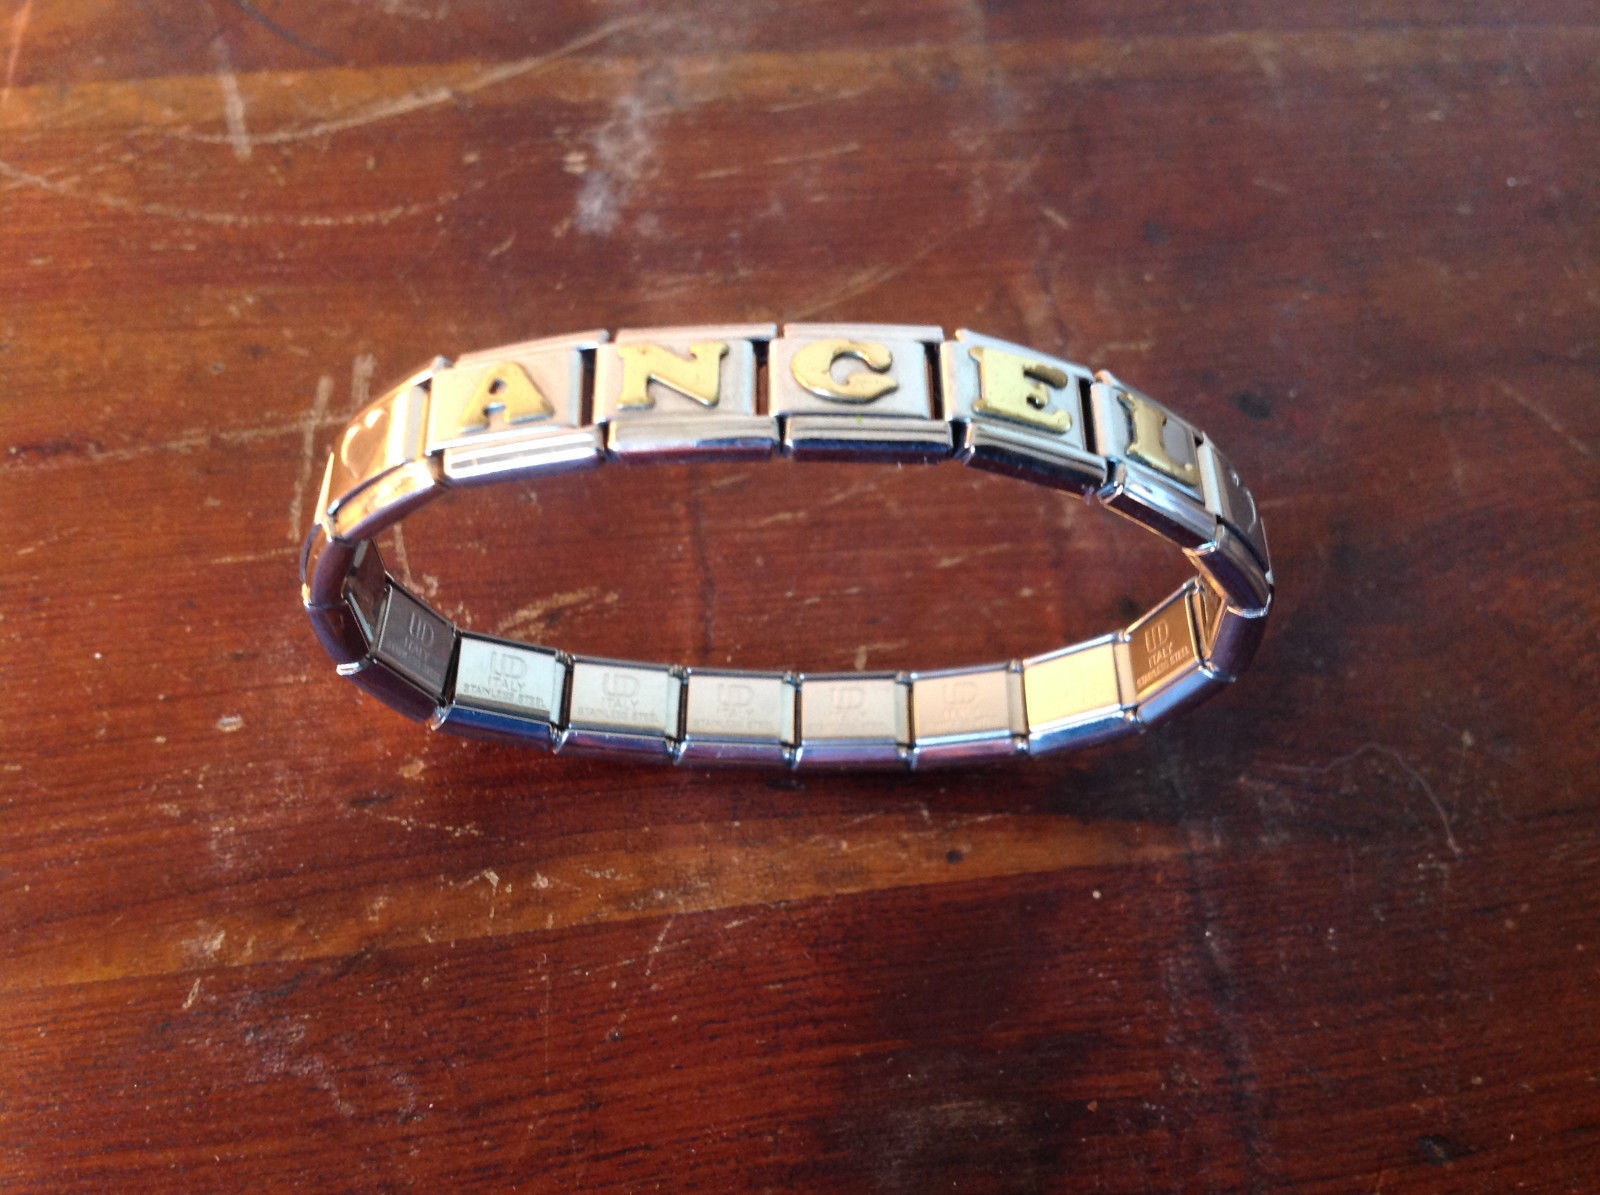 Stretchy Metal ANGEL Bracelet Gold Tone Letters Made in Italy Silver Tone